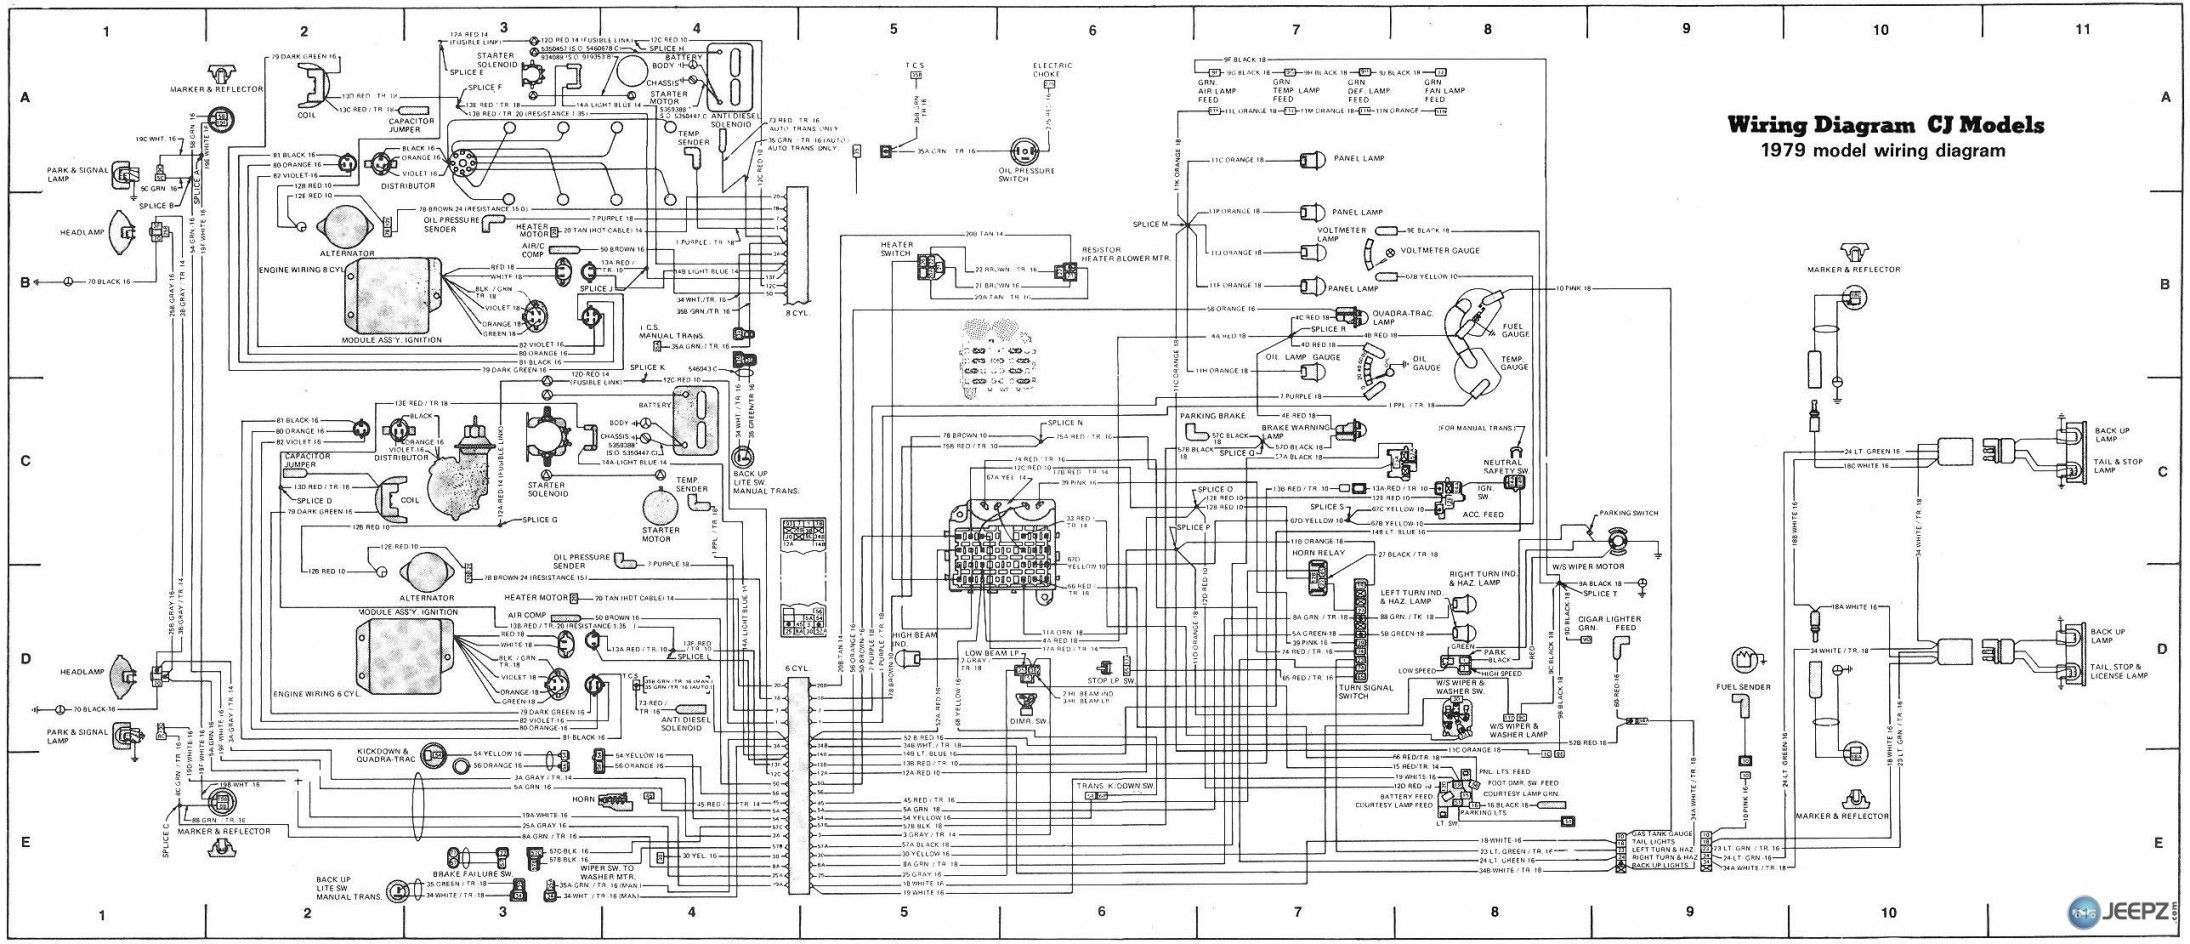 79 Camaro Fuse Box Diagram Wiring Library 70 Z28 1975 Cj5 Schematic Rh Theodocle Fion Com 1979